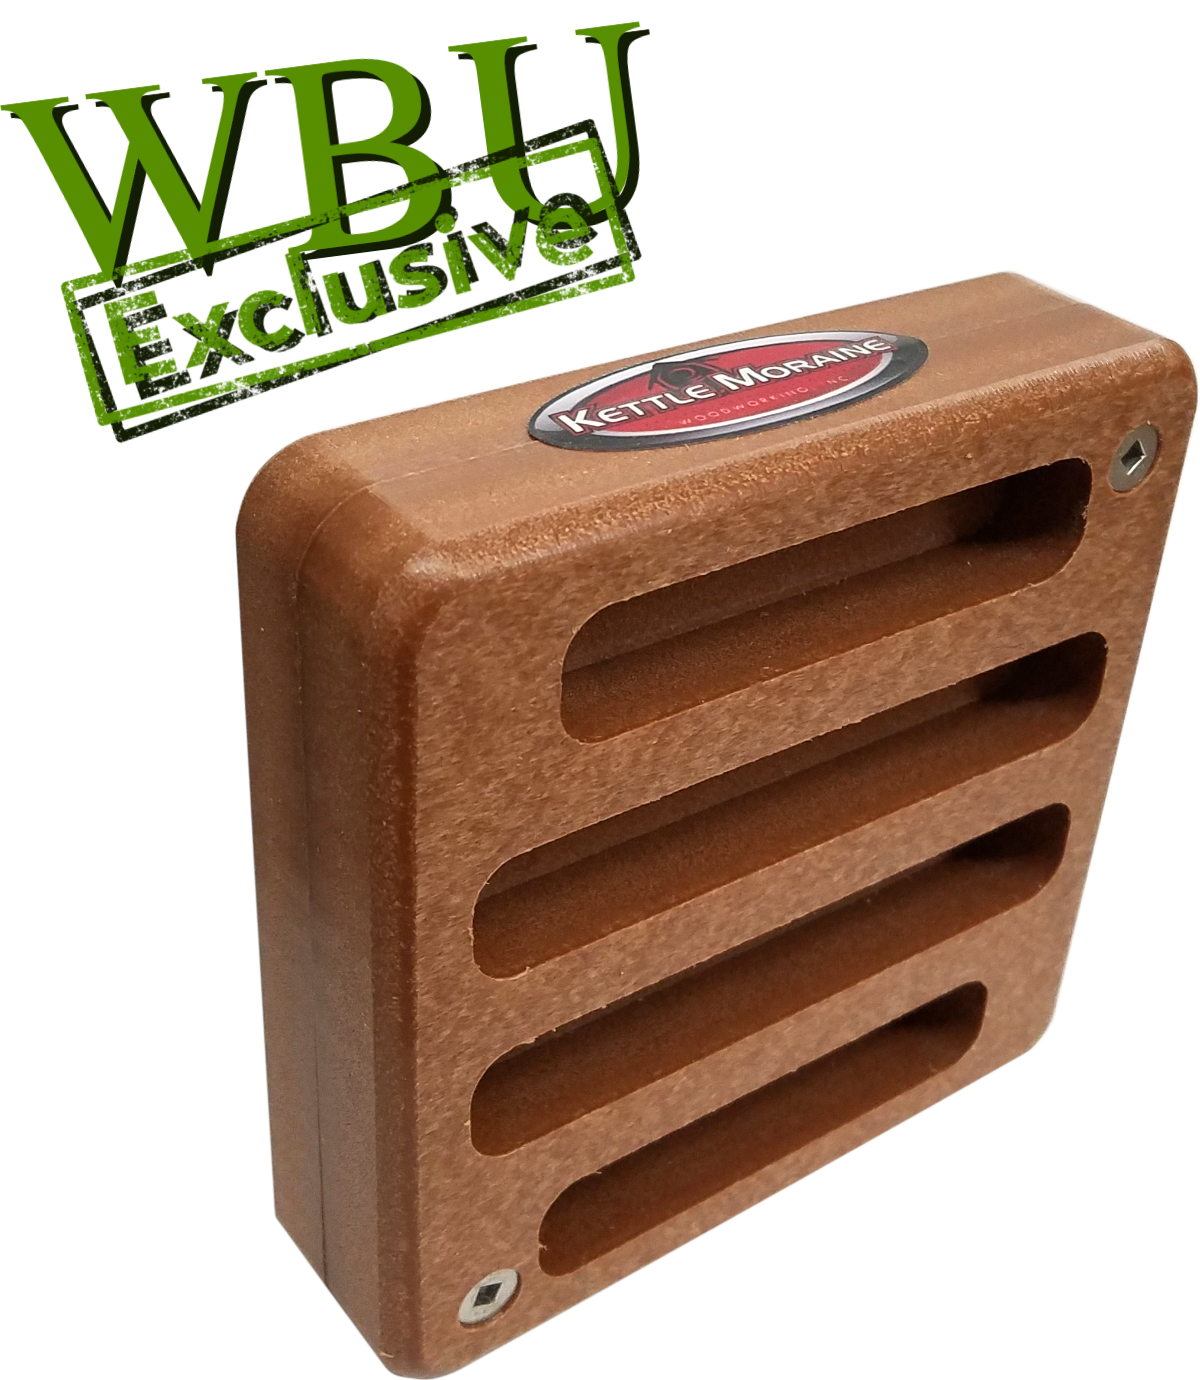 Recycled Bark Butter/PB Block (WBU Exclusive)